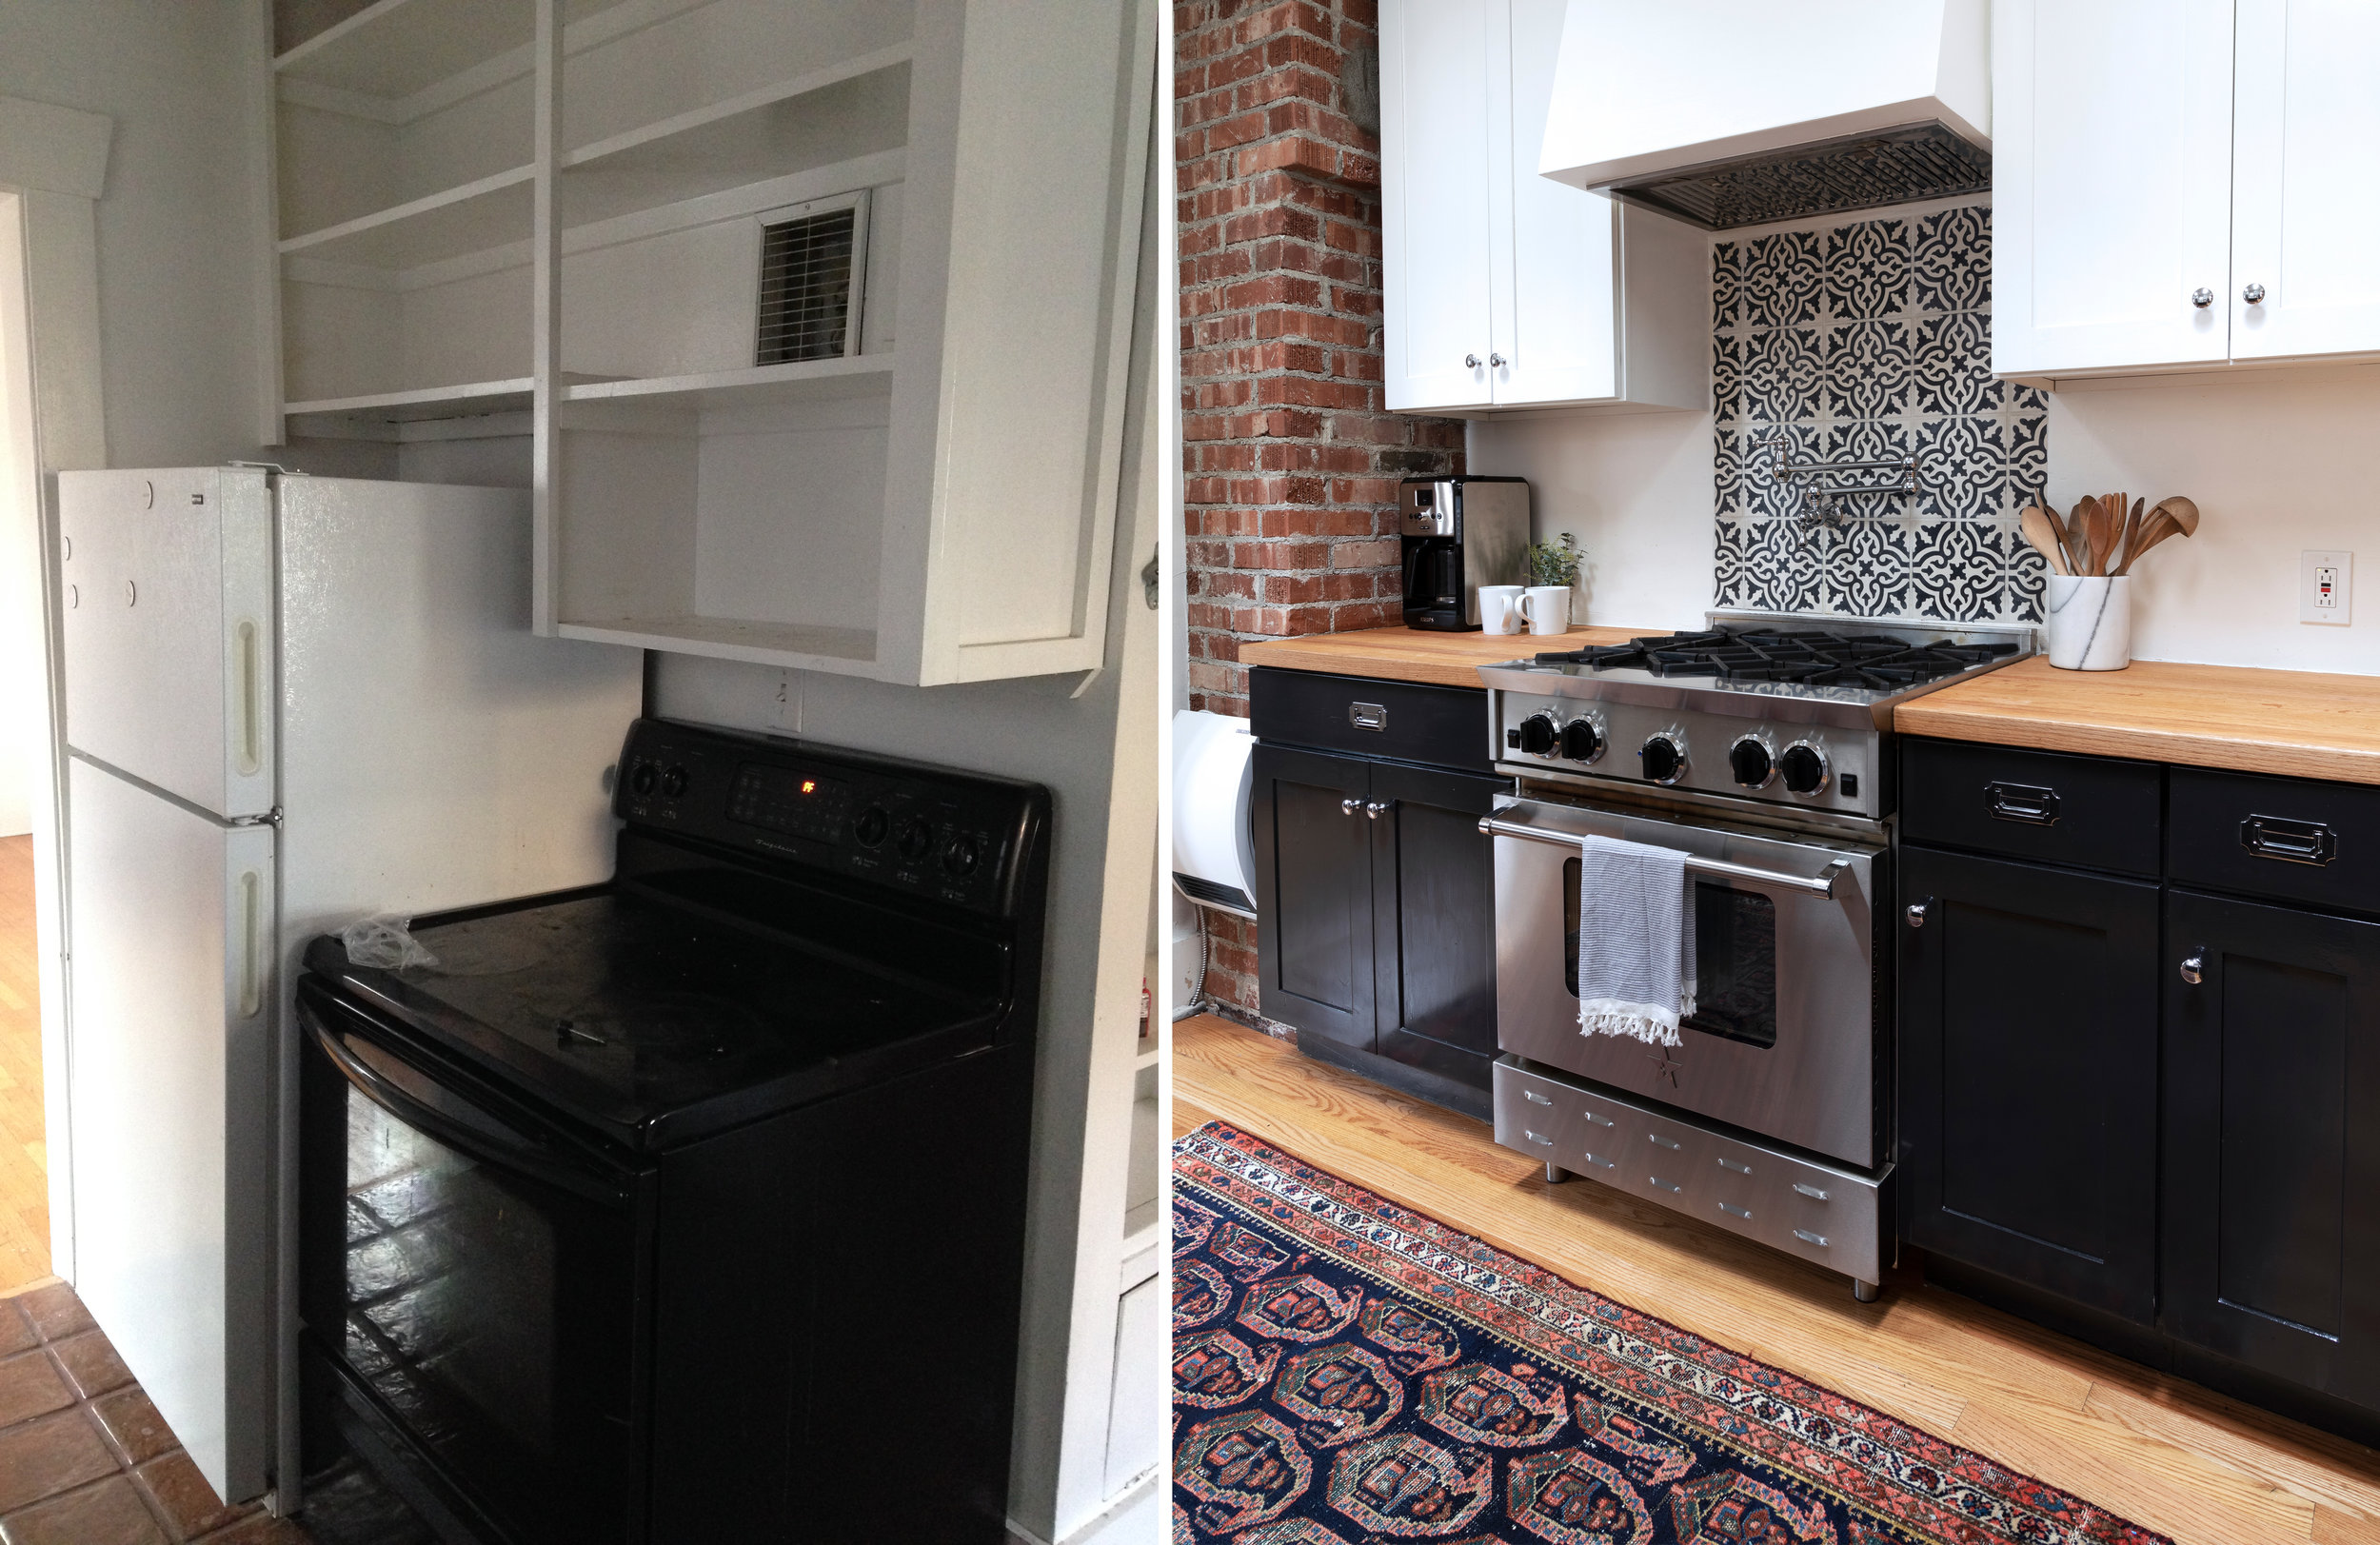 The Grit and Polish - Dexter Kitchen Before and After Range.jpg